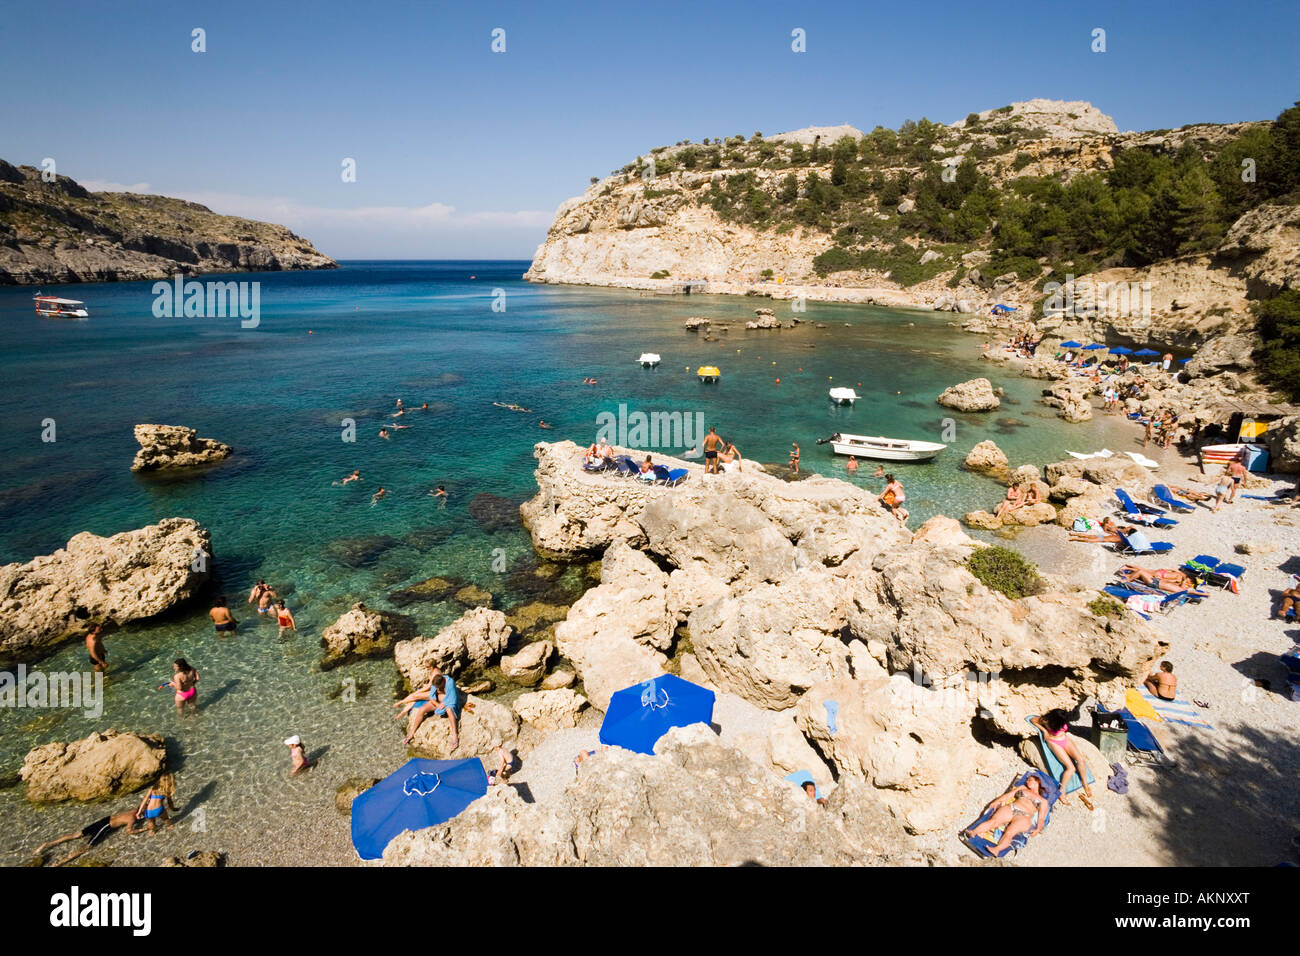 view over beach at anthony quinn bay film location of the film the stock photo 15046175 alamy. Black Bedroom Furniture Sets. Home Design Ideas